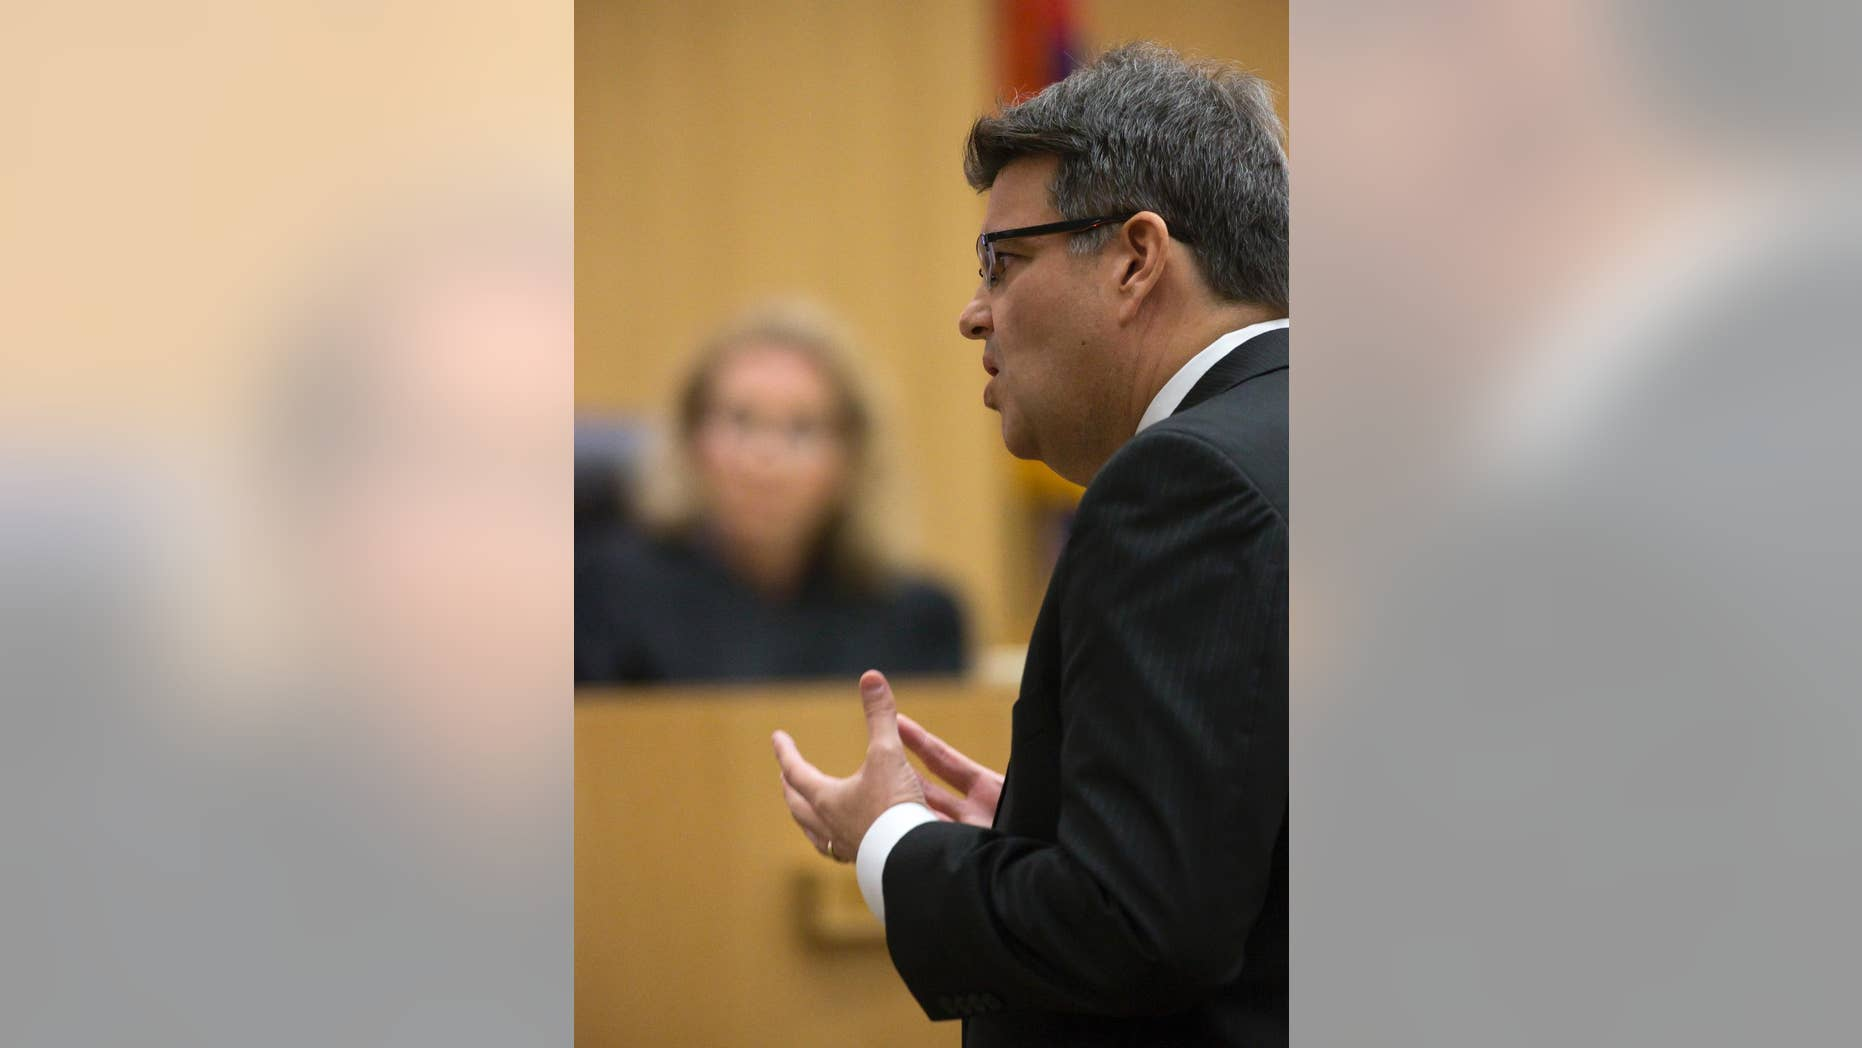 Defense attorney Kirk Nurmi presents his final arguments during the sentencing phase of the Jodi Arias retrial at Maricopa County Superior Court, Tuesday, Feb. 24, 2015 in Phoenix. (AP Photo/The Arizona Republic, Mark Henle, Pool)